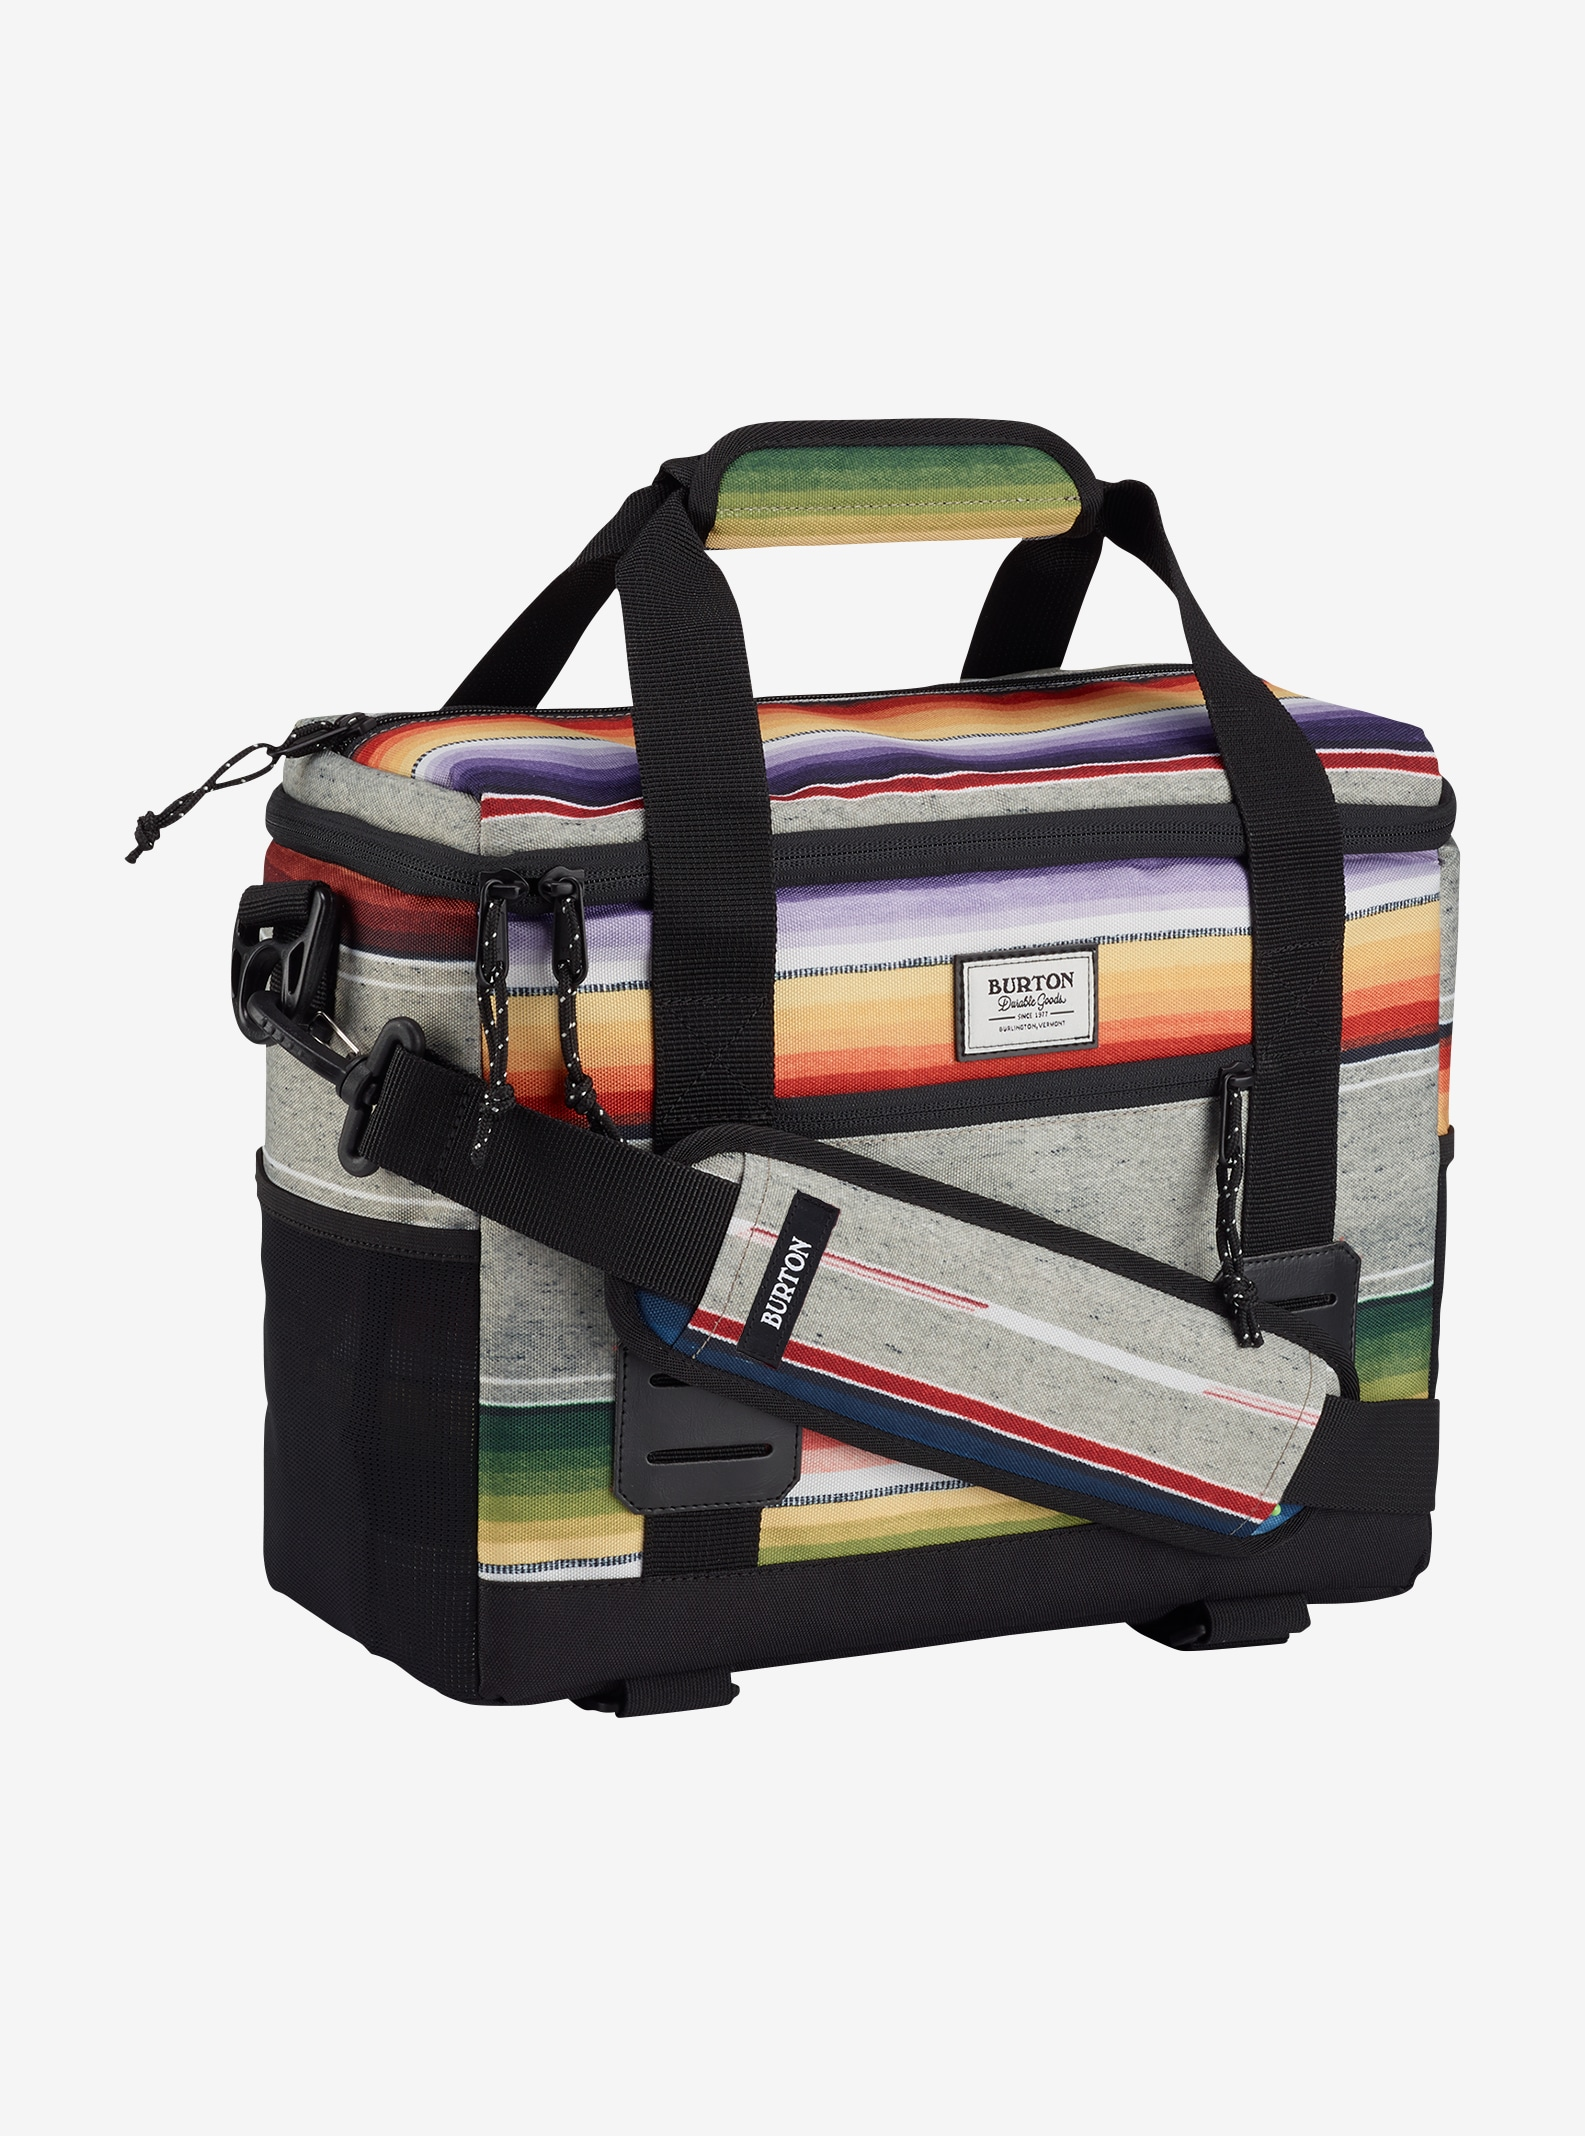 Burton Lil Buddy shown in Bright Sinola Stripe Print